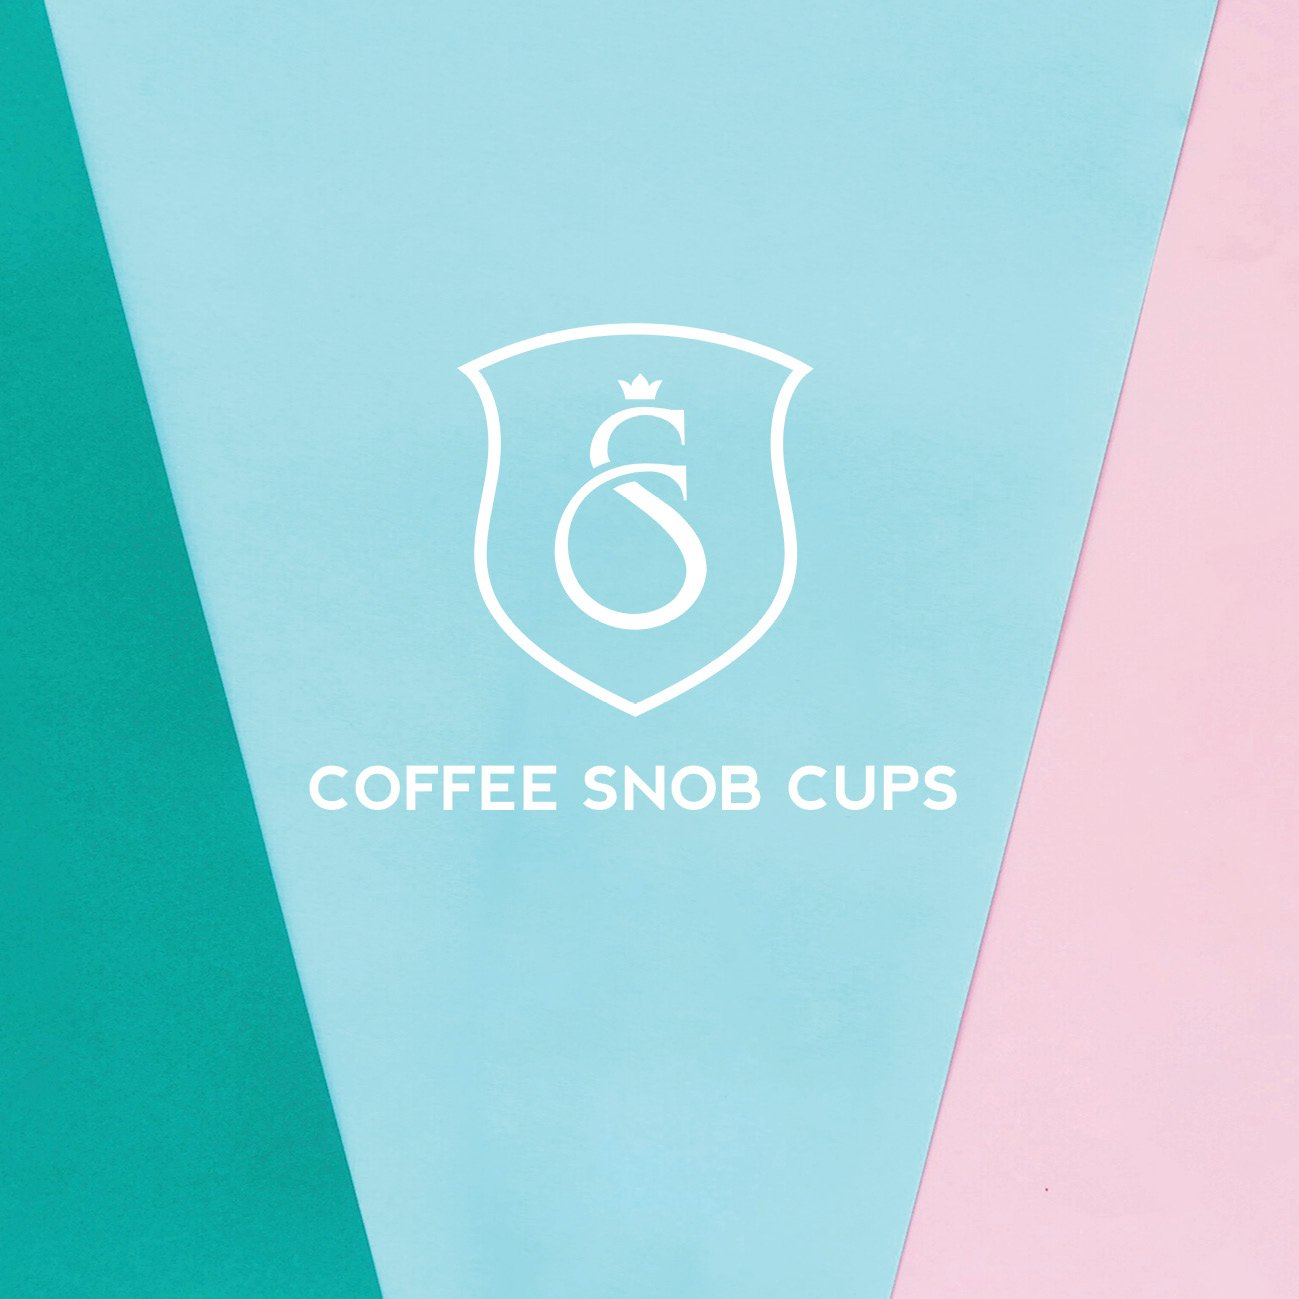 Coffee Snob Cups Logo Design